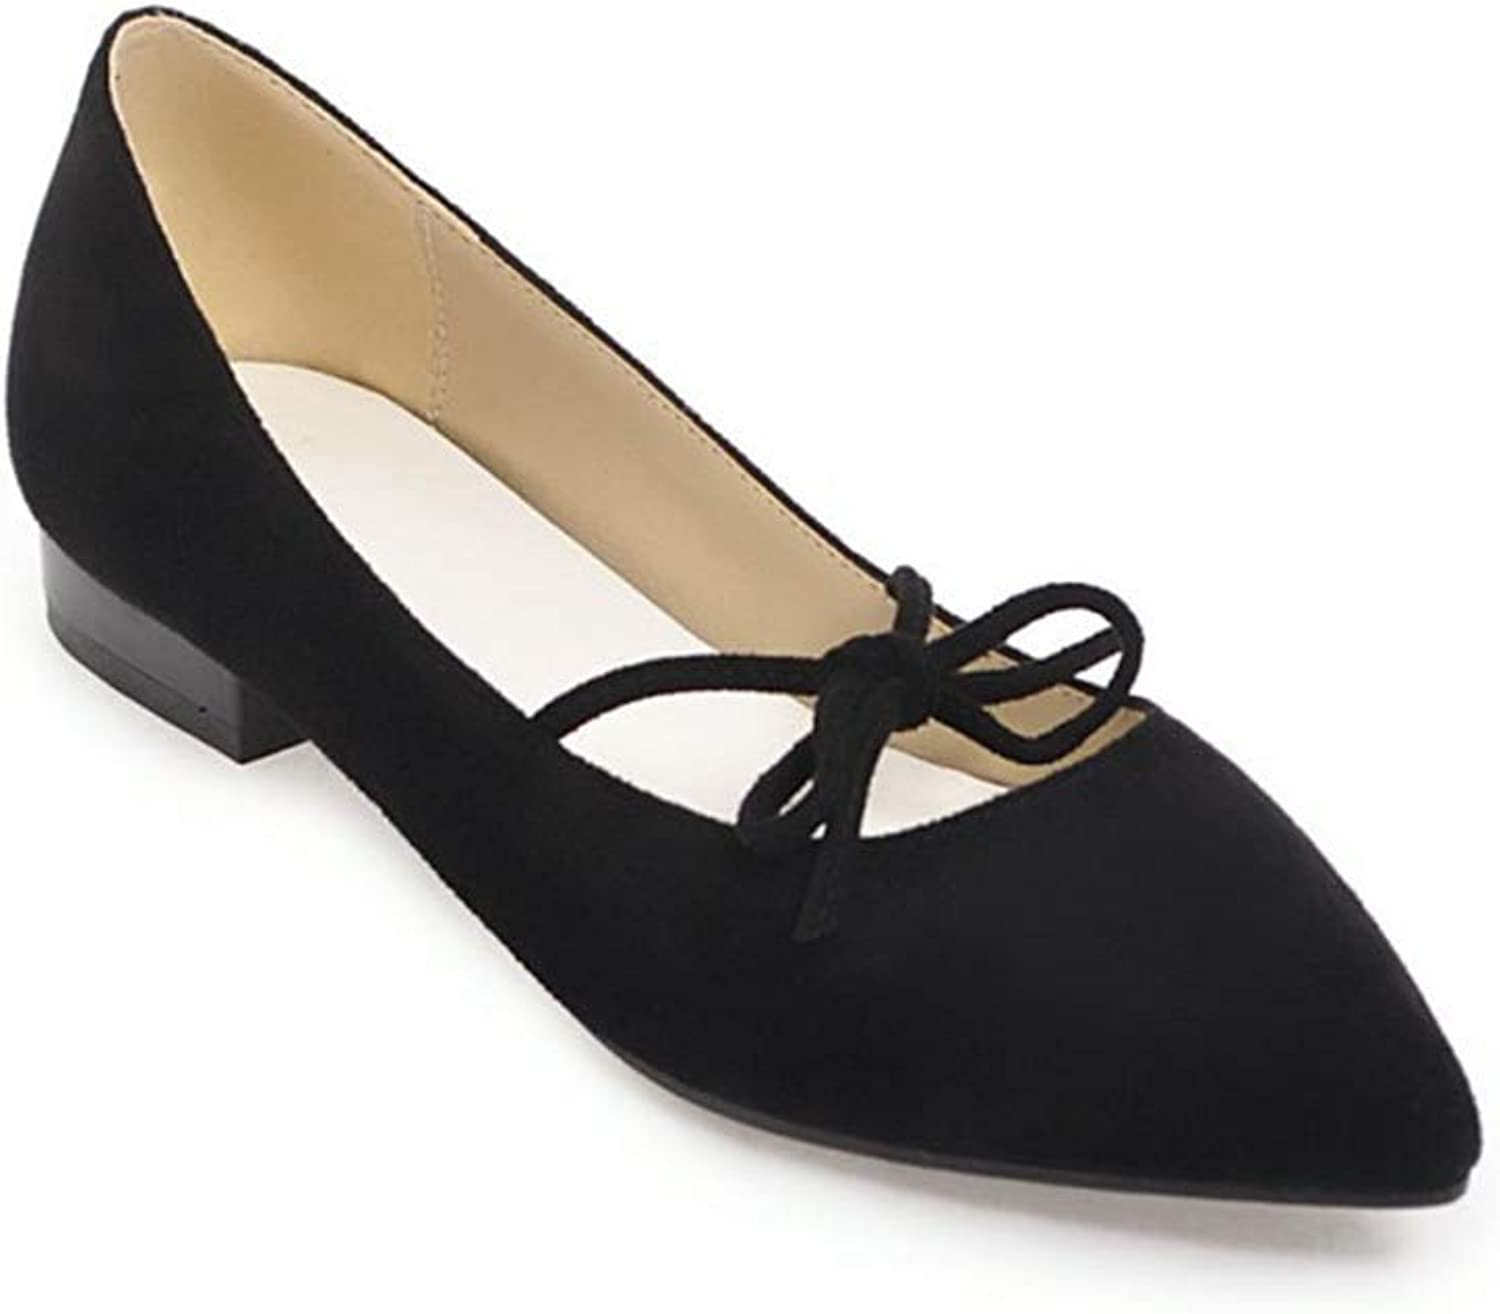 Fashion Ballet Flats for Women,Pointed Toe Breathable Walking shoes, Elegant Suede Loafers